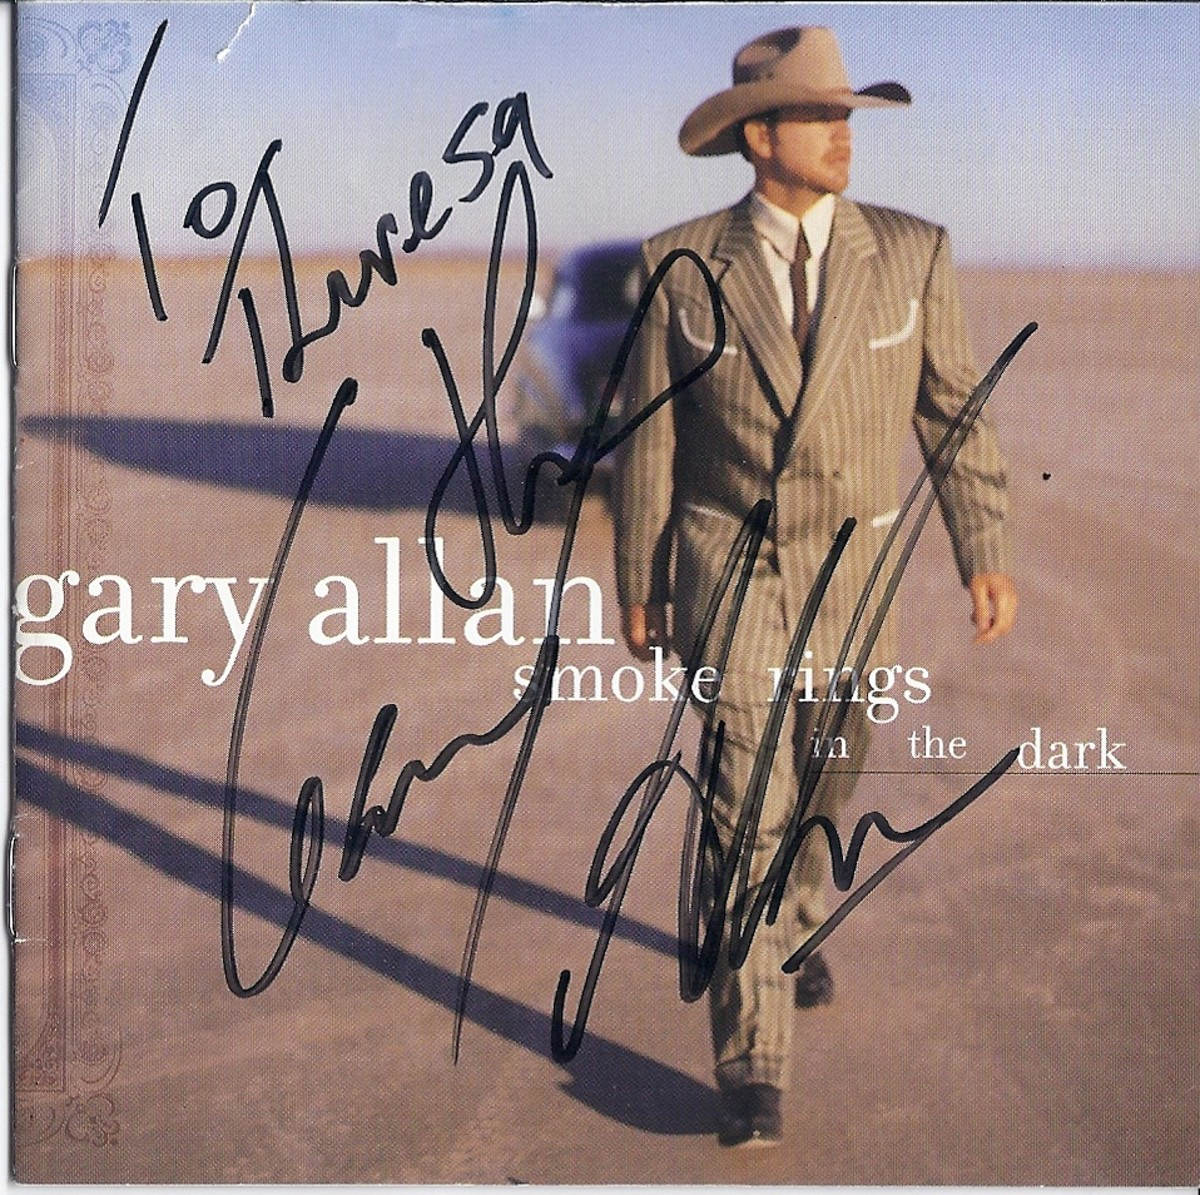 Copy of my autographed CD cover.